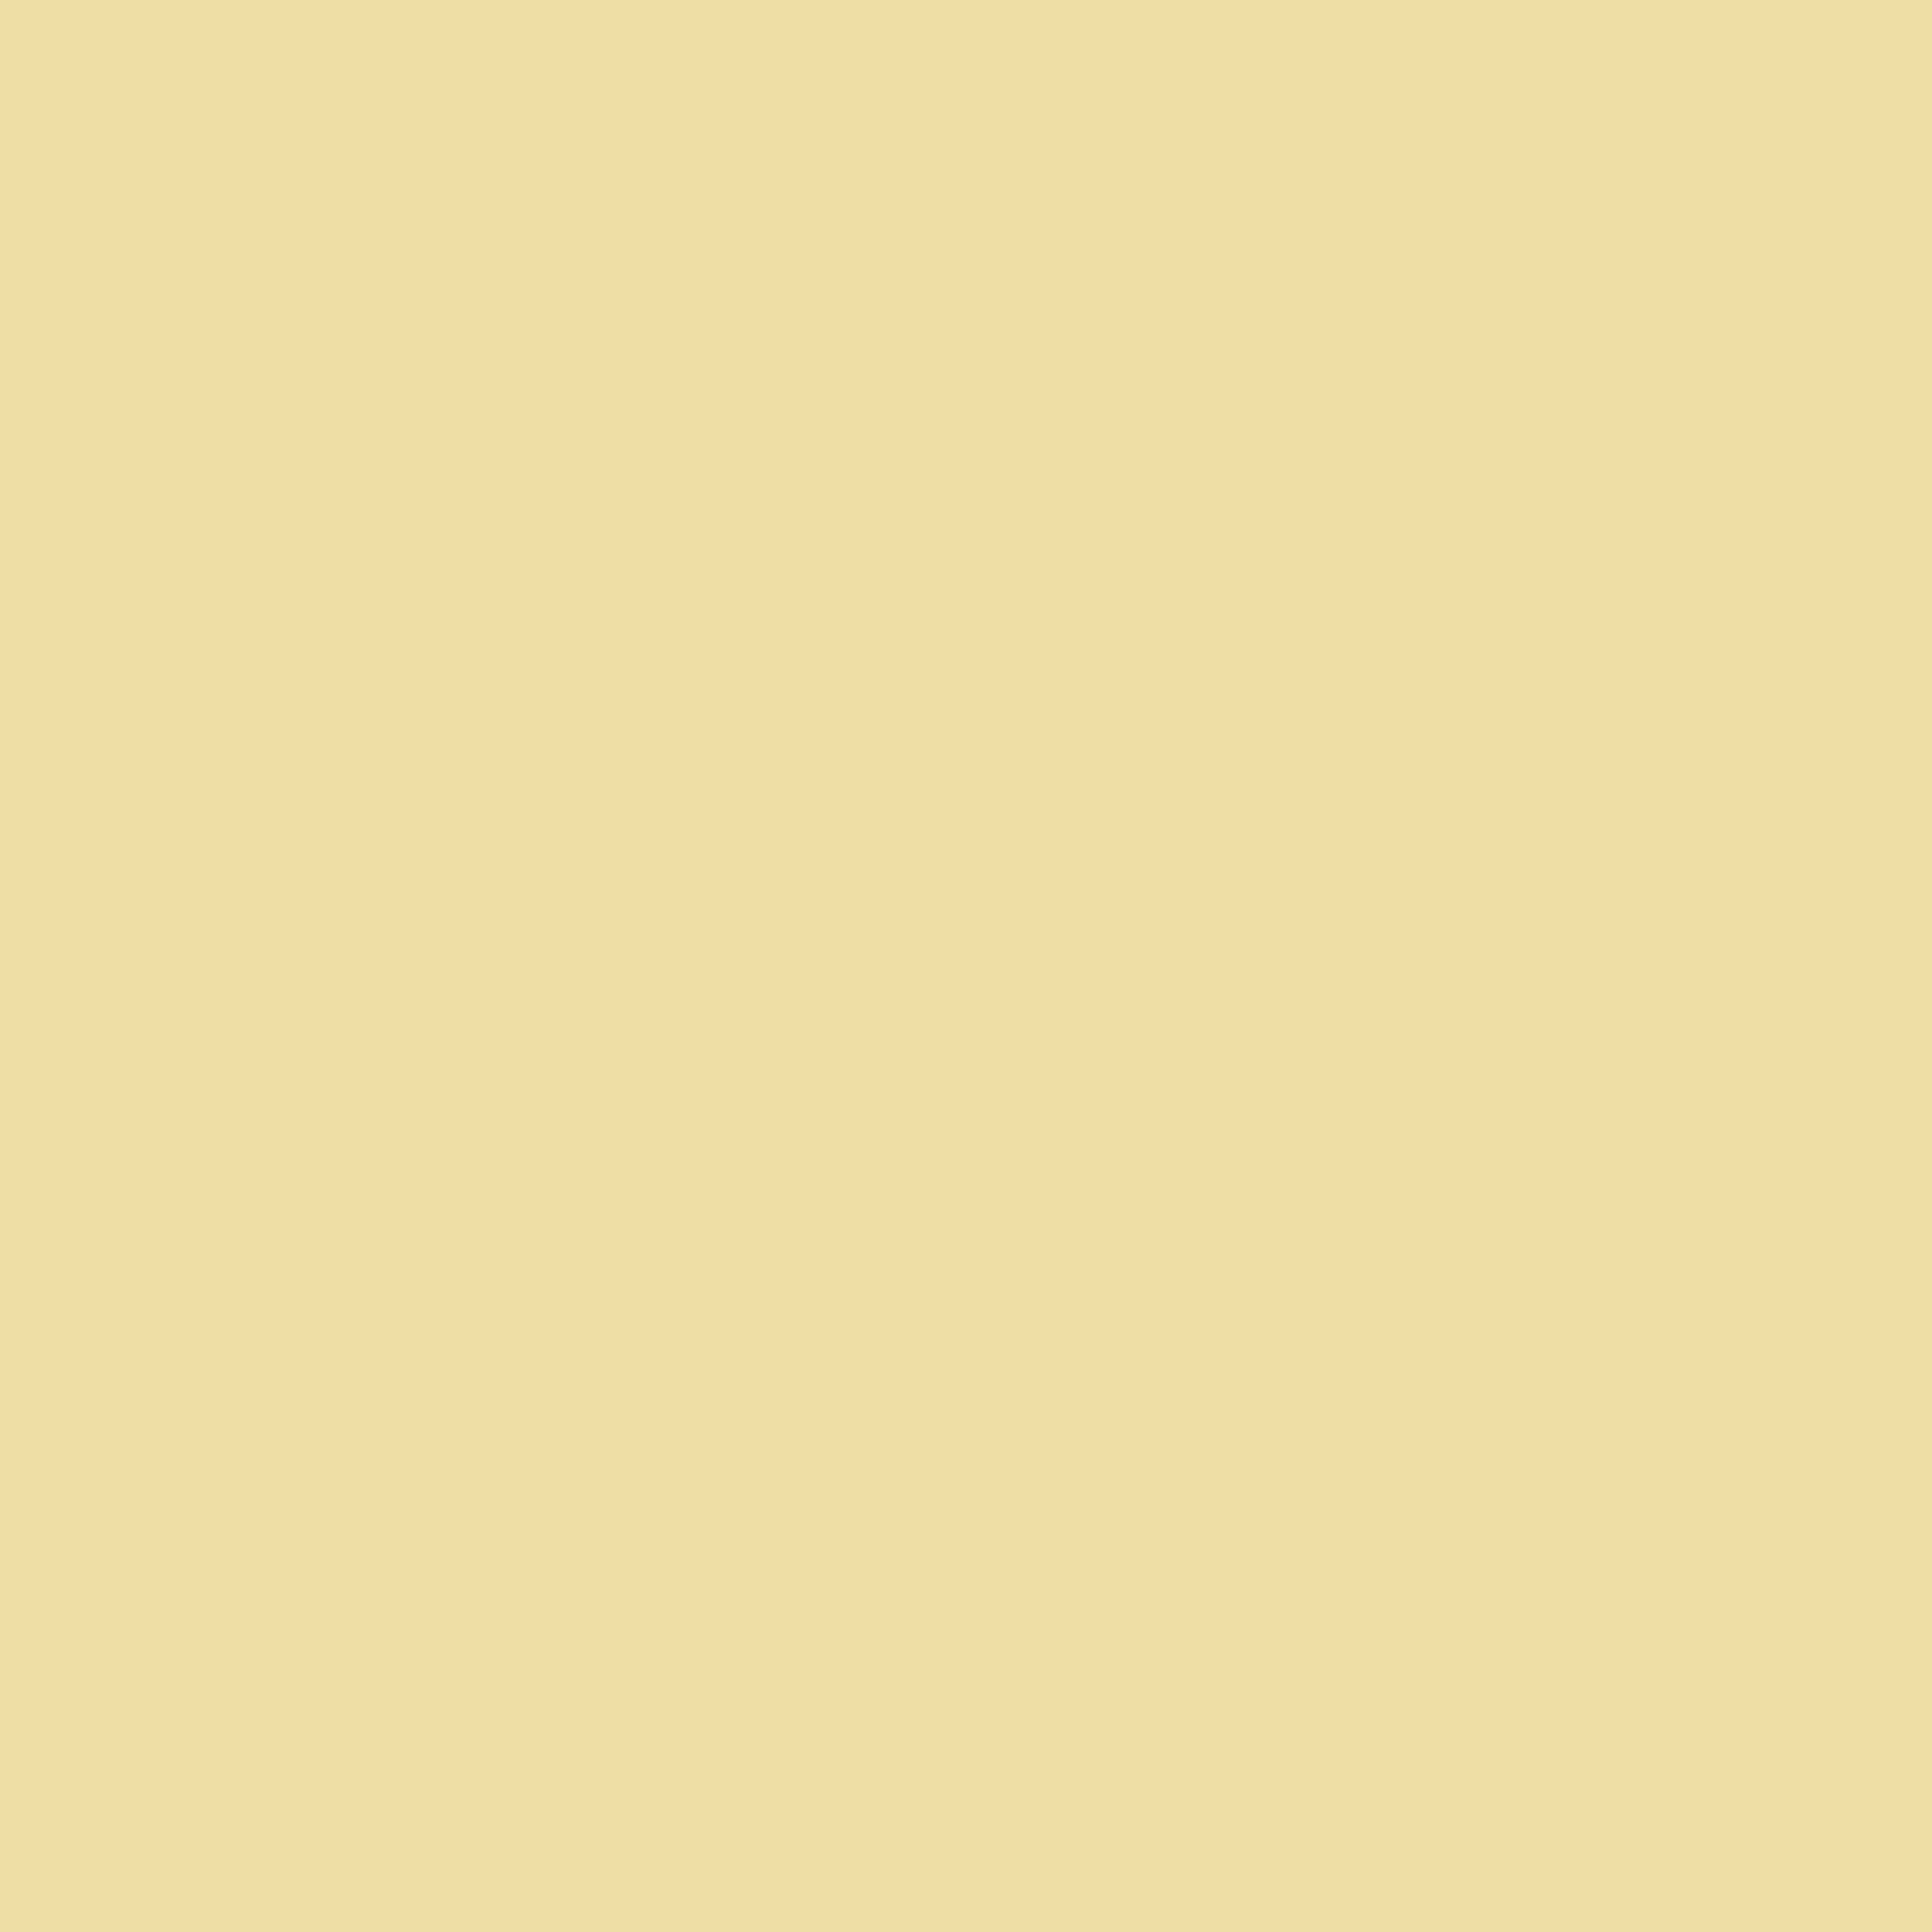 Soft Yellow   HEX: #EDDCA5   RGB: 237, 220, 165   CMYK: 7, 10, 40, 0